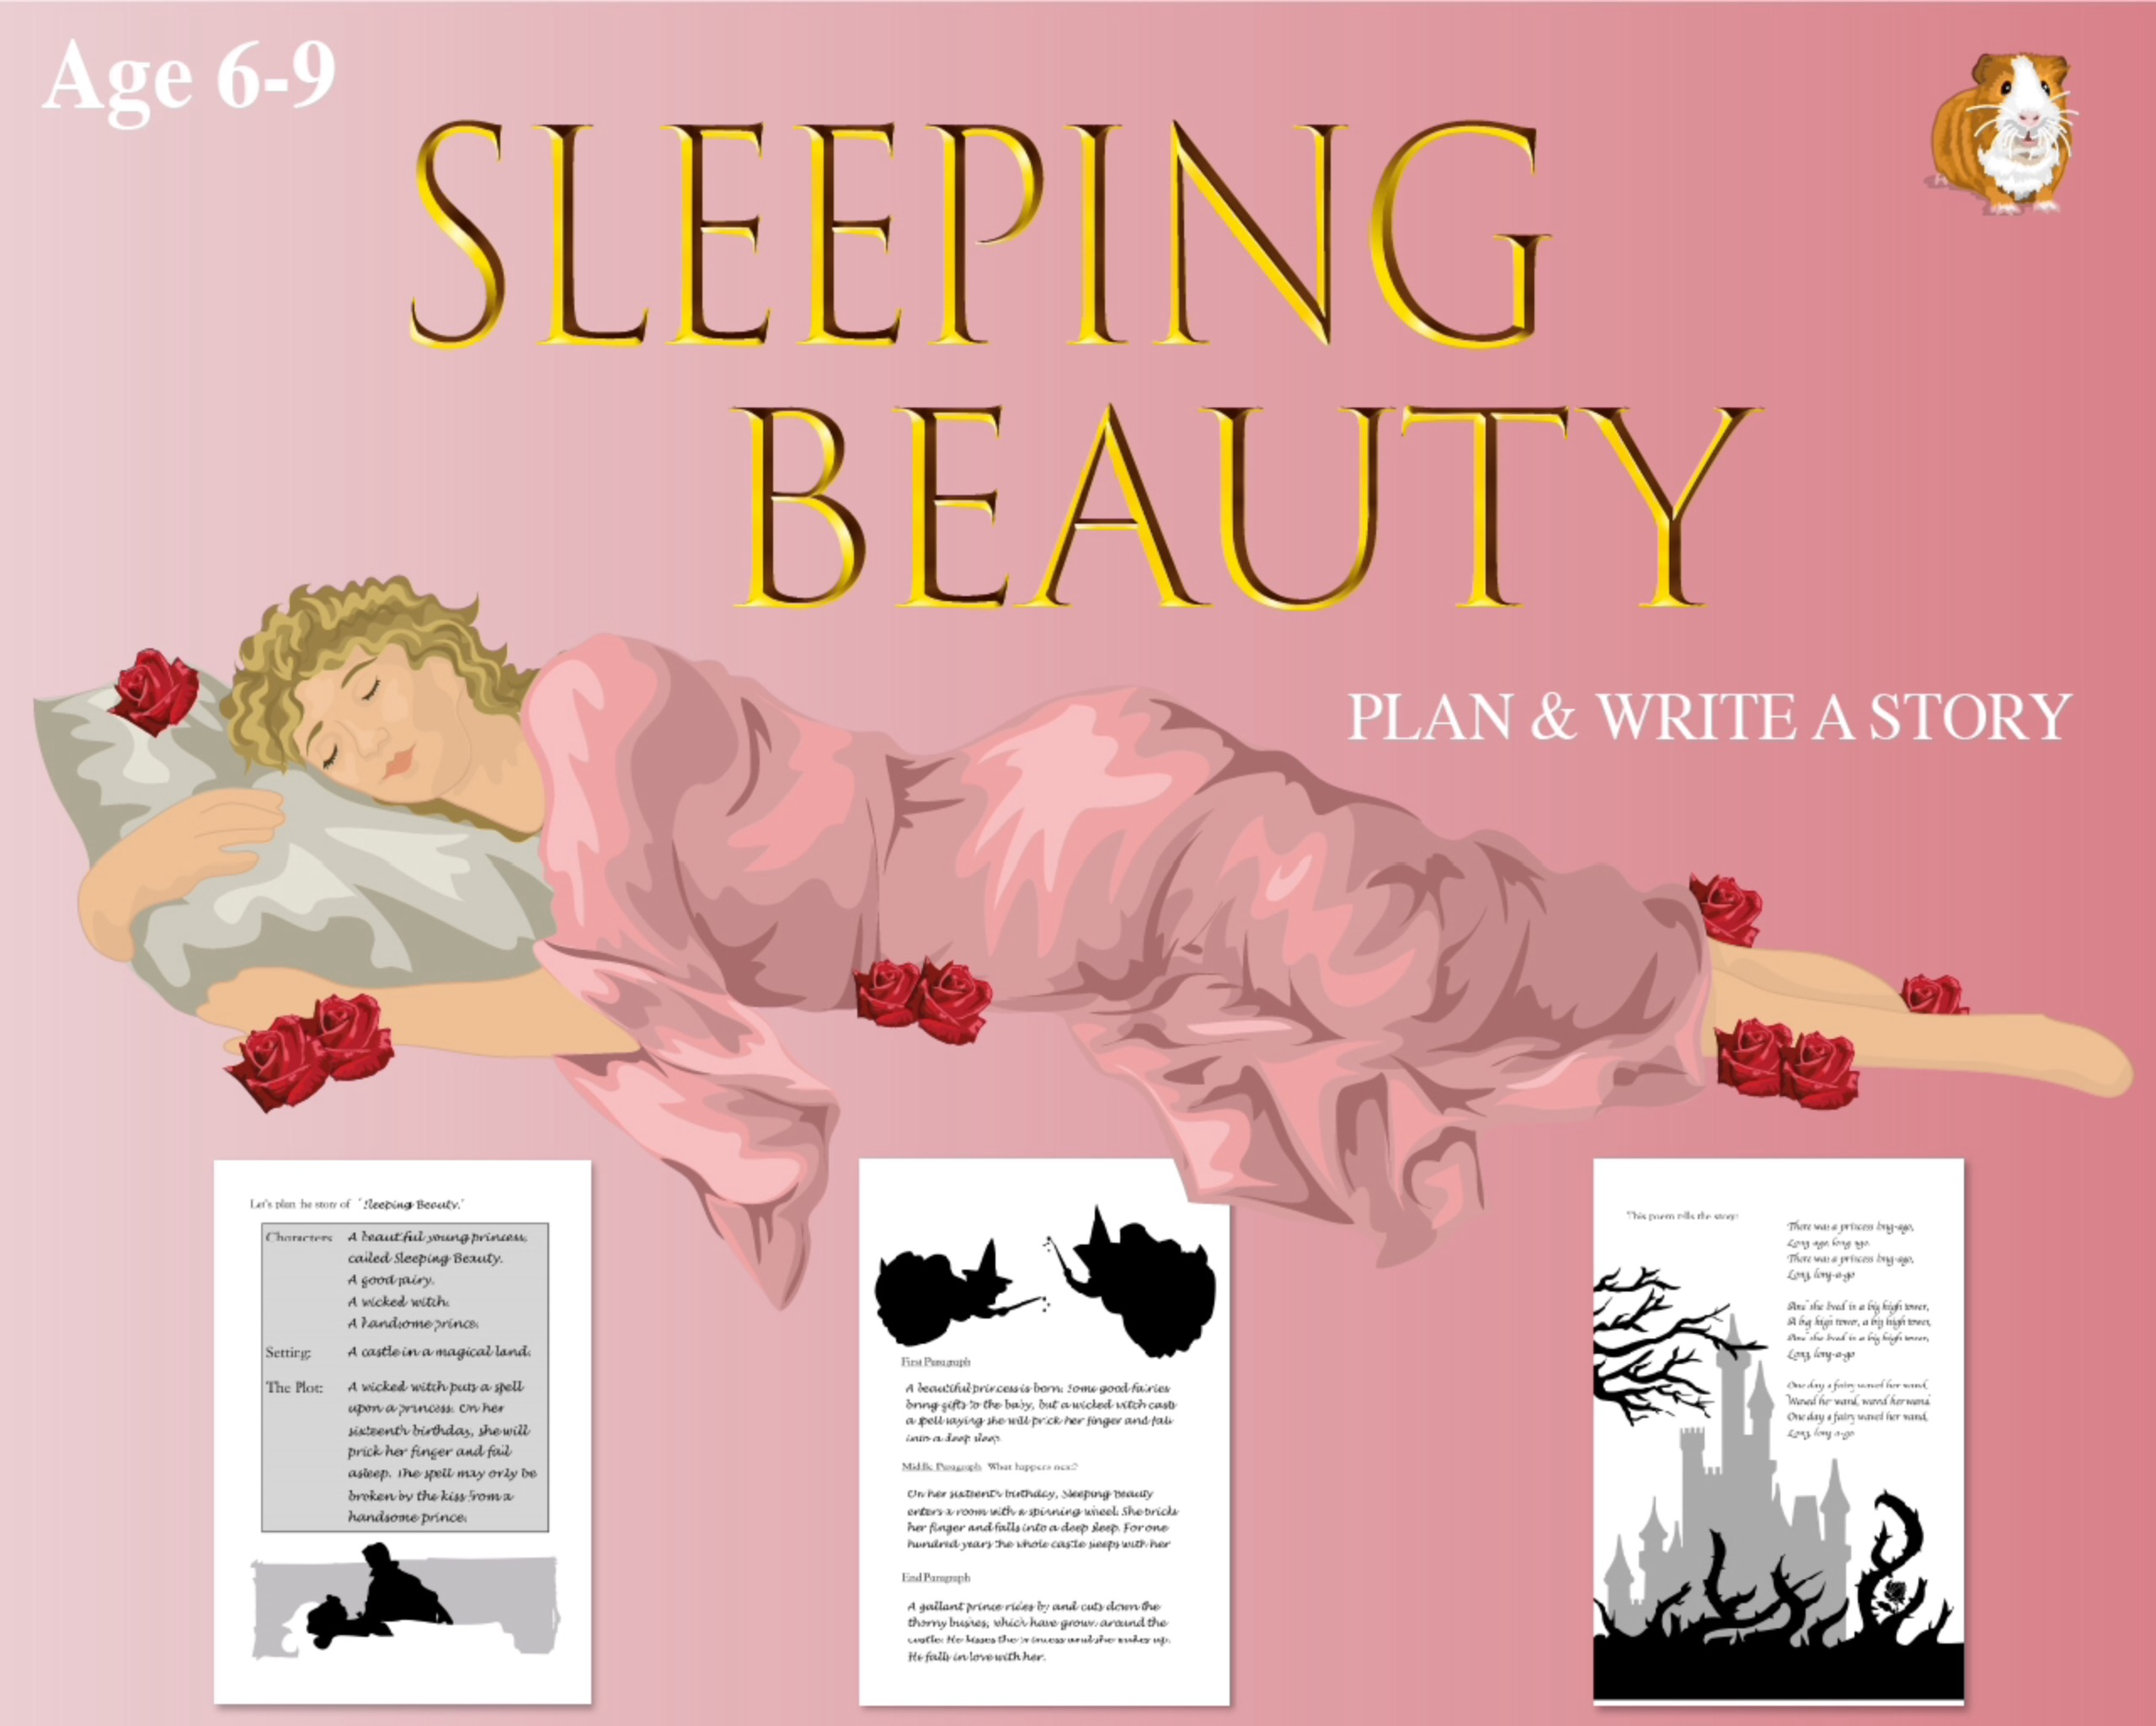 Plan And Write The Story Of Sleeping Beauty'  (6-9 years)